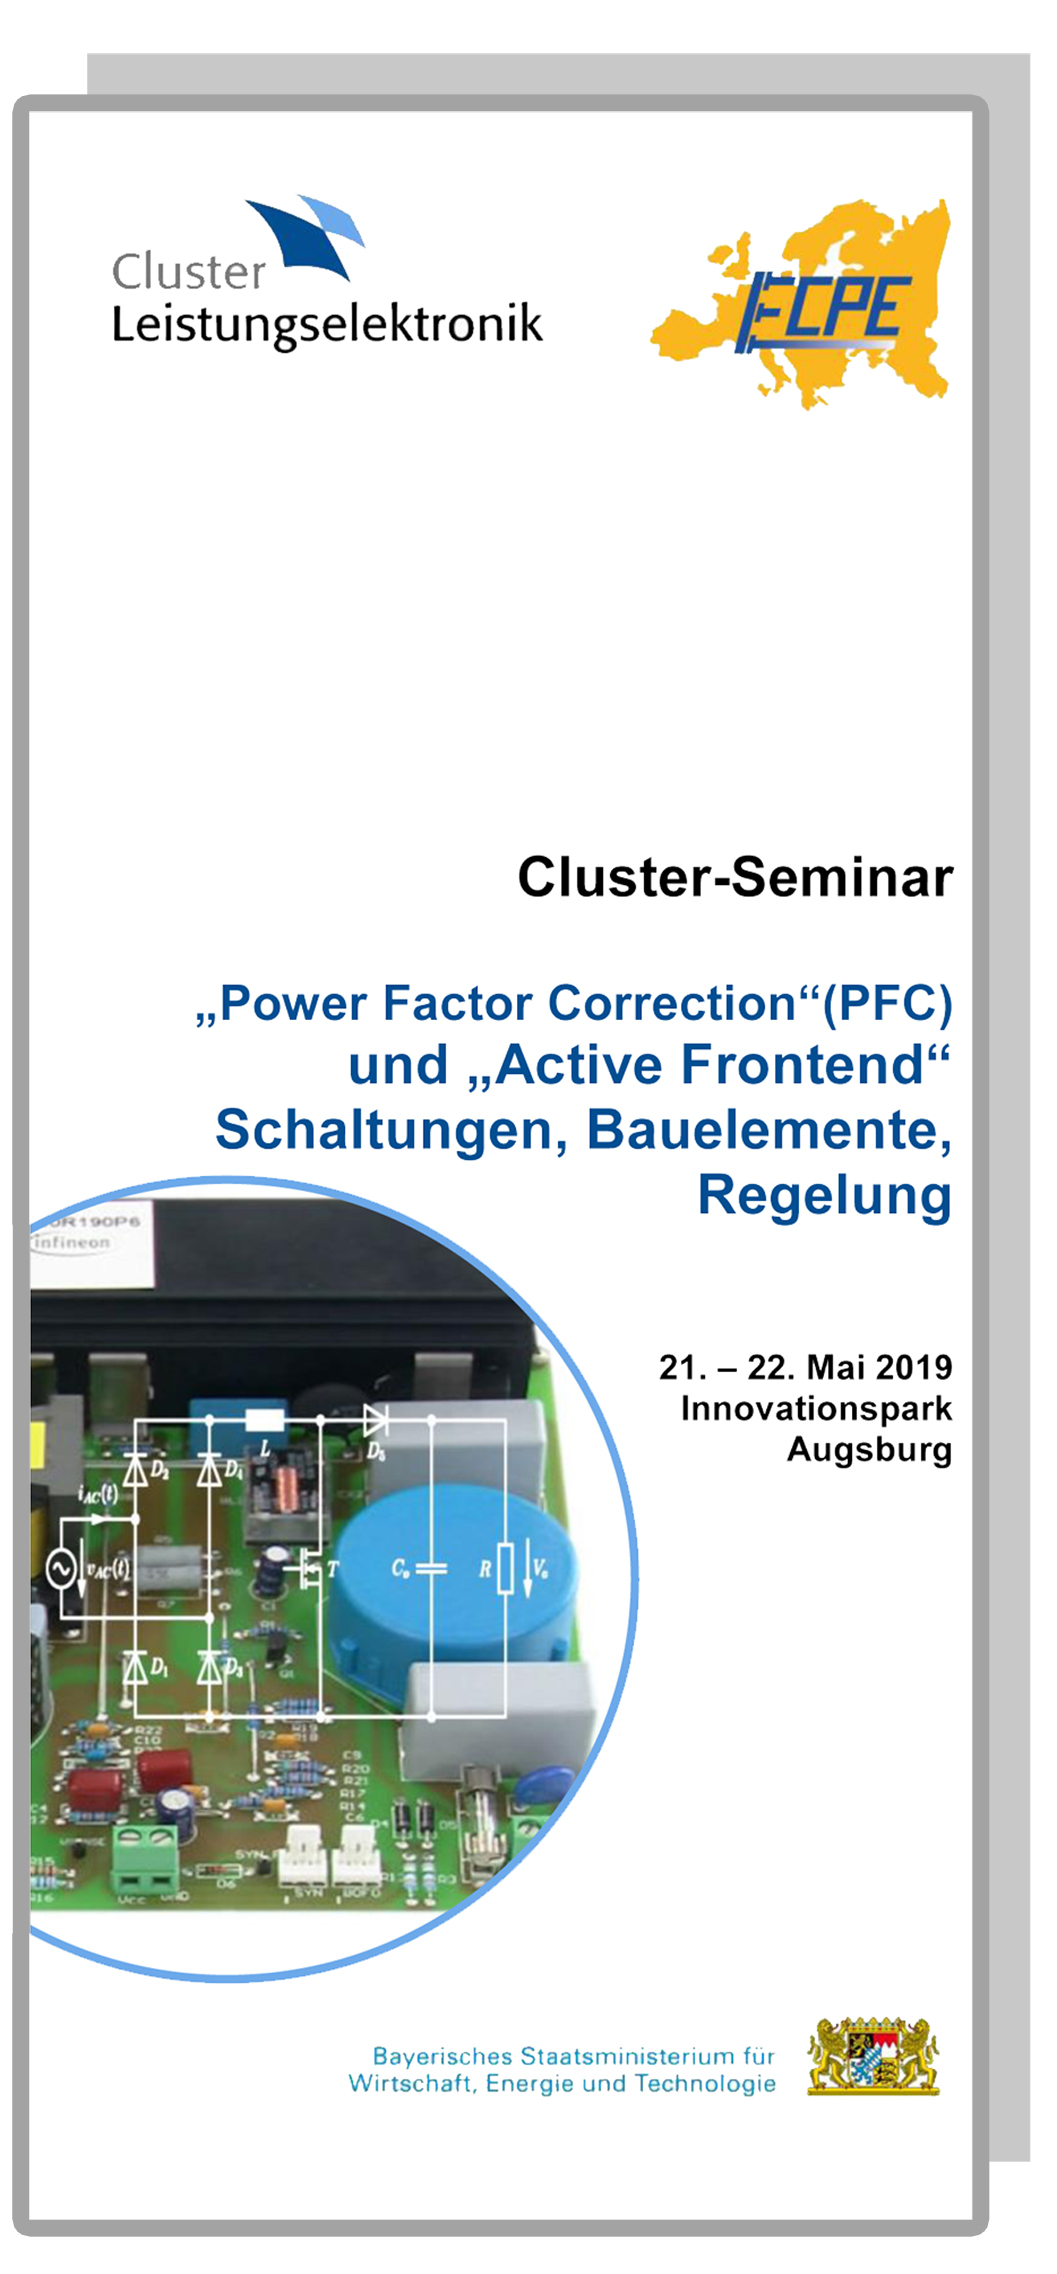 Cluster-Seminar: Power Factor Correction - PFC